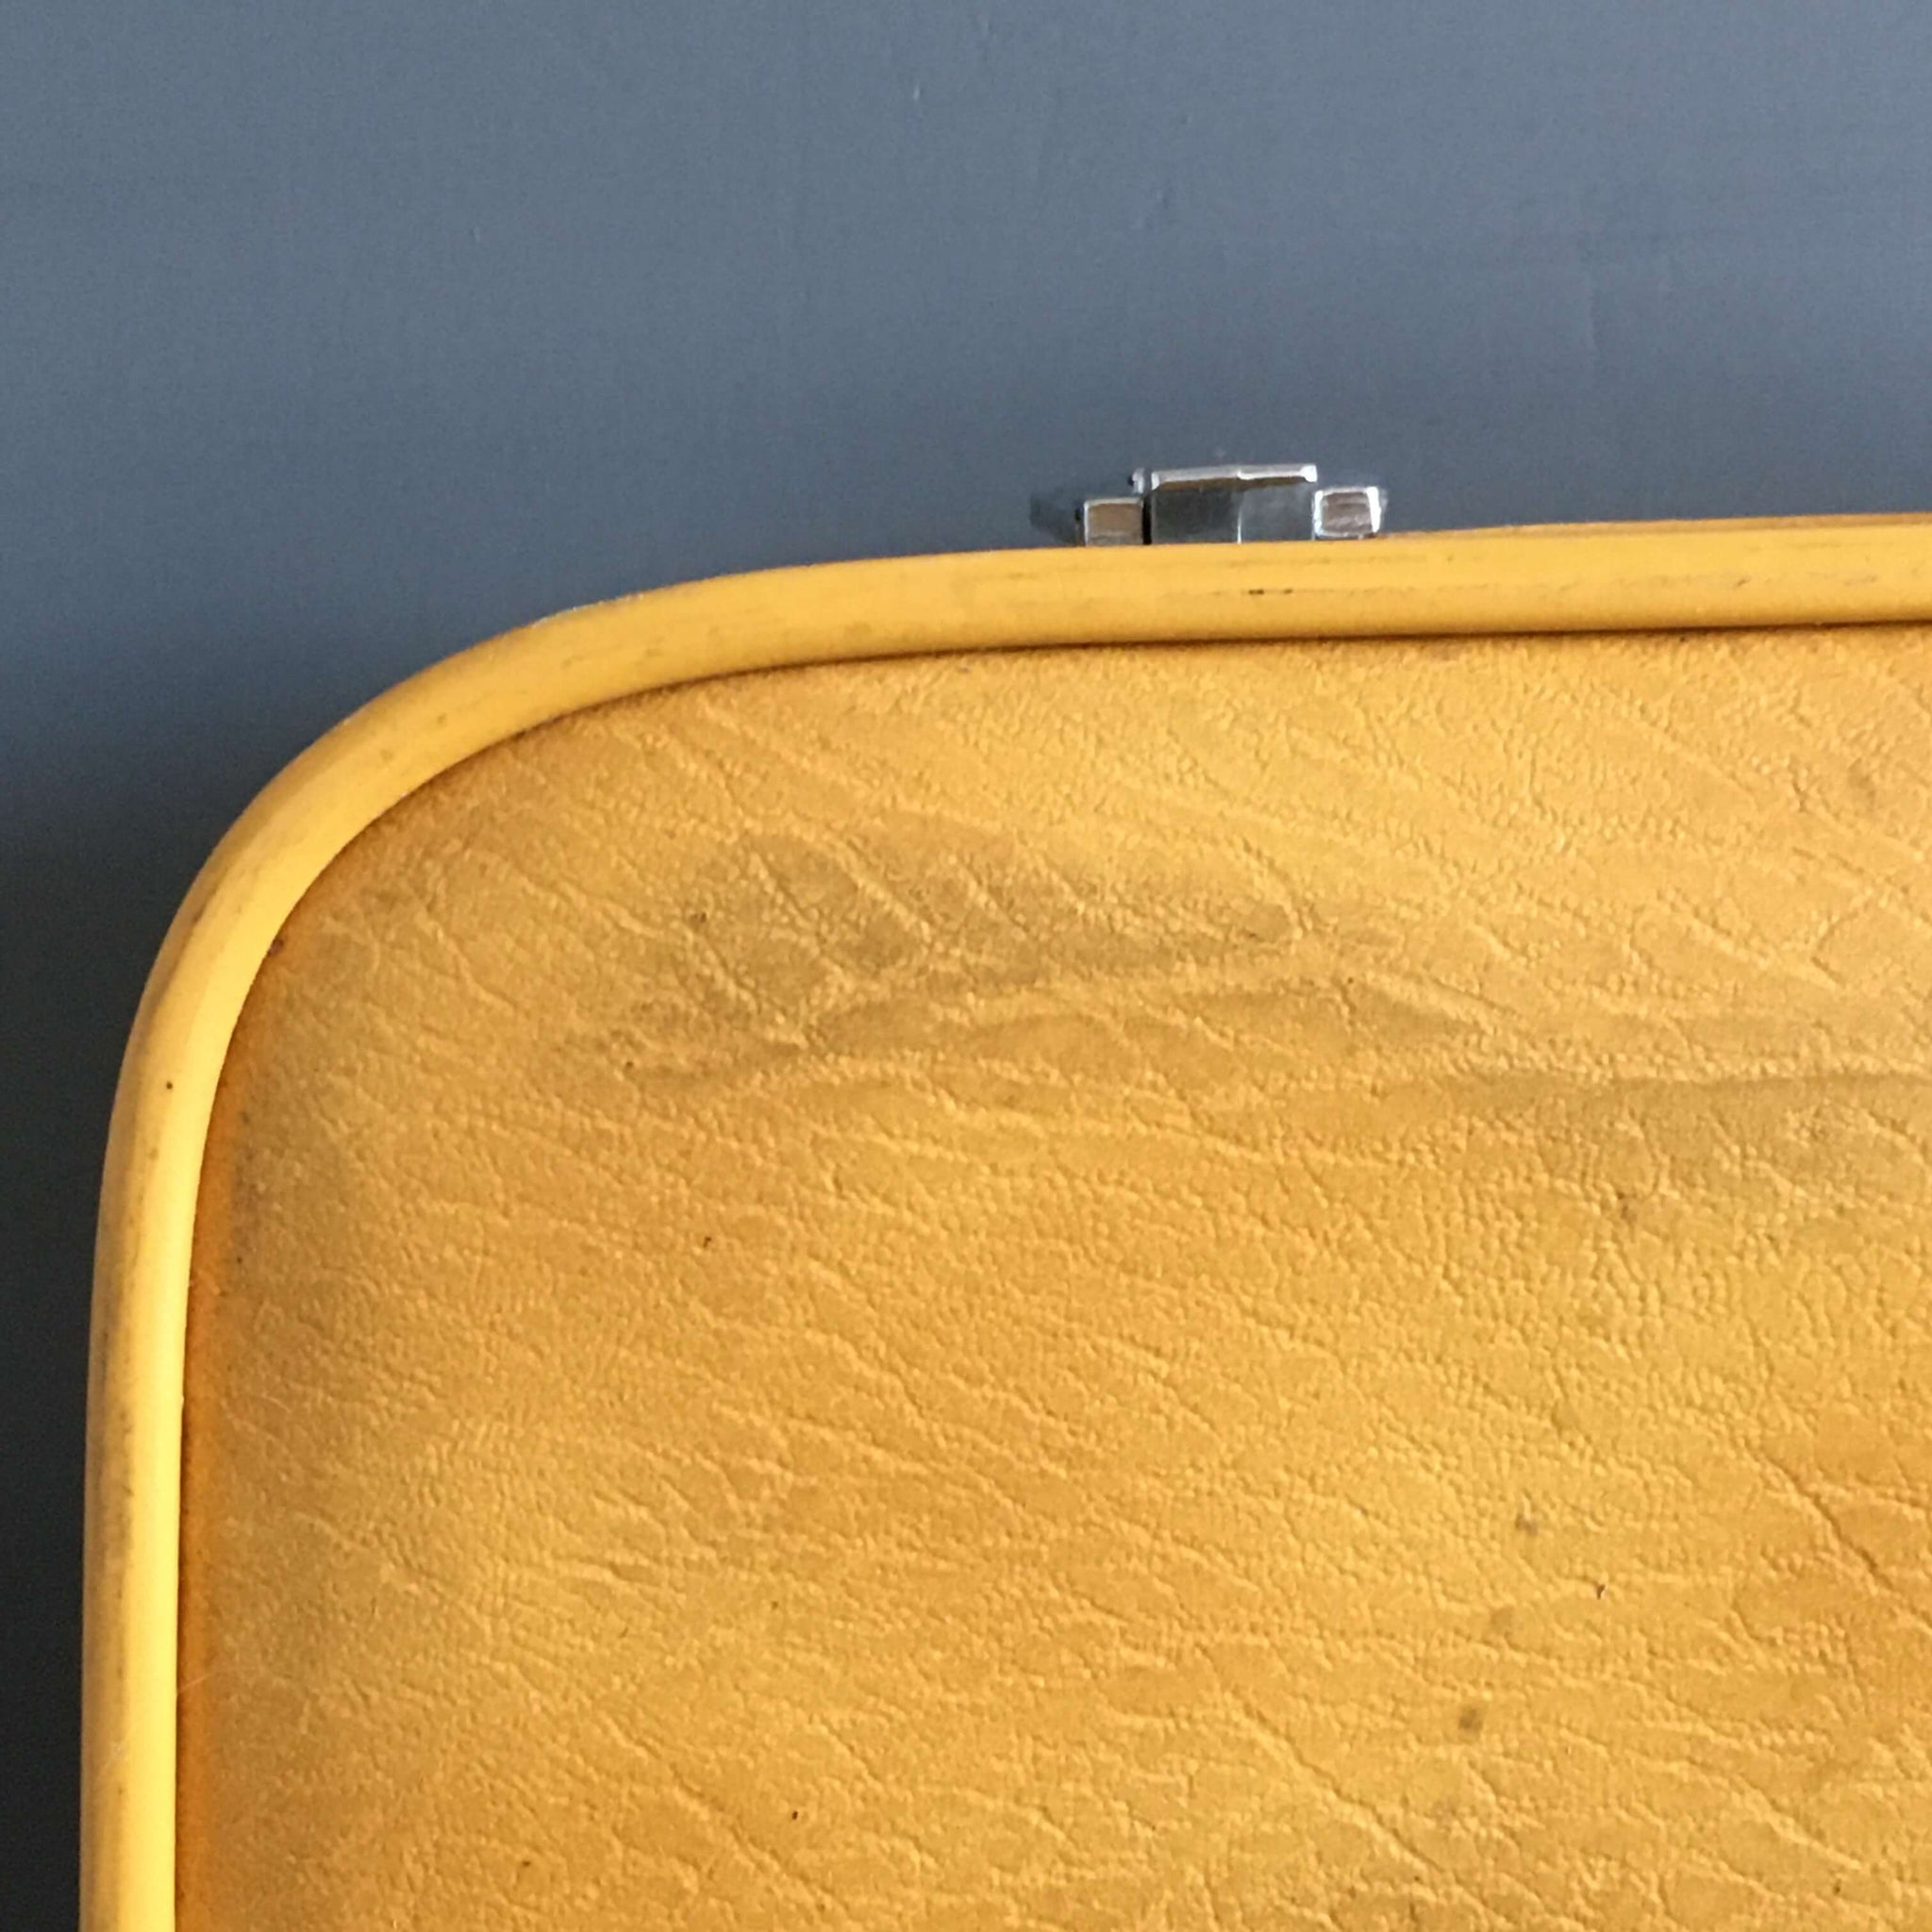 Rare Vintage Yellow Starflite Suitcase - Made by Roper Luggage - Circa 1960's/1970s